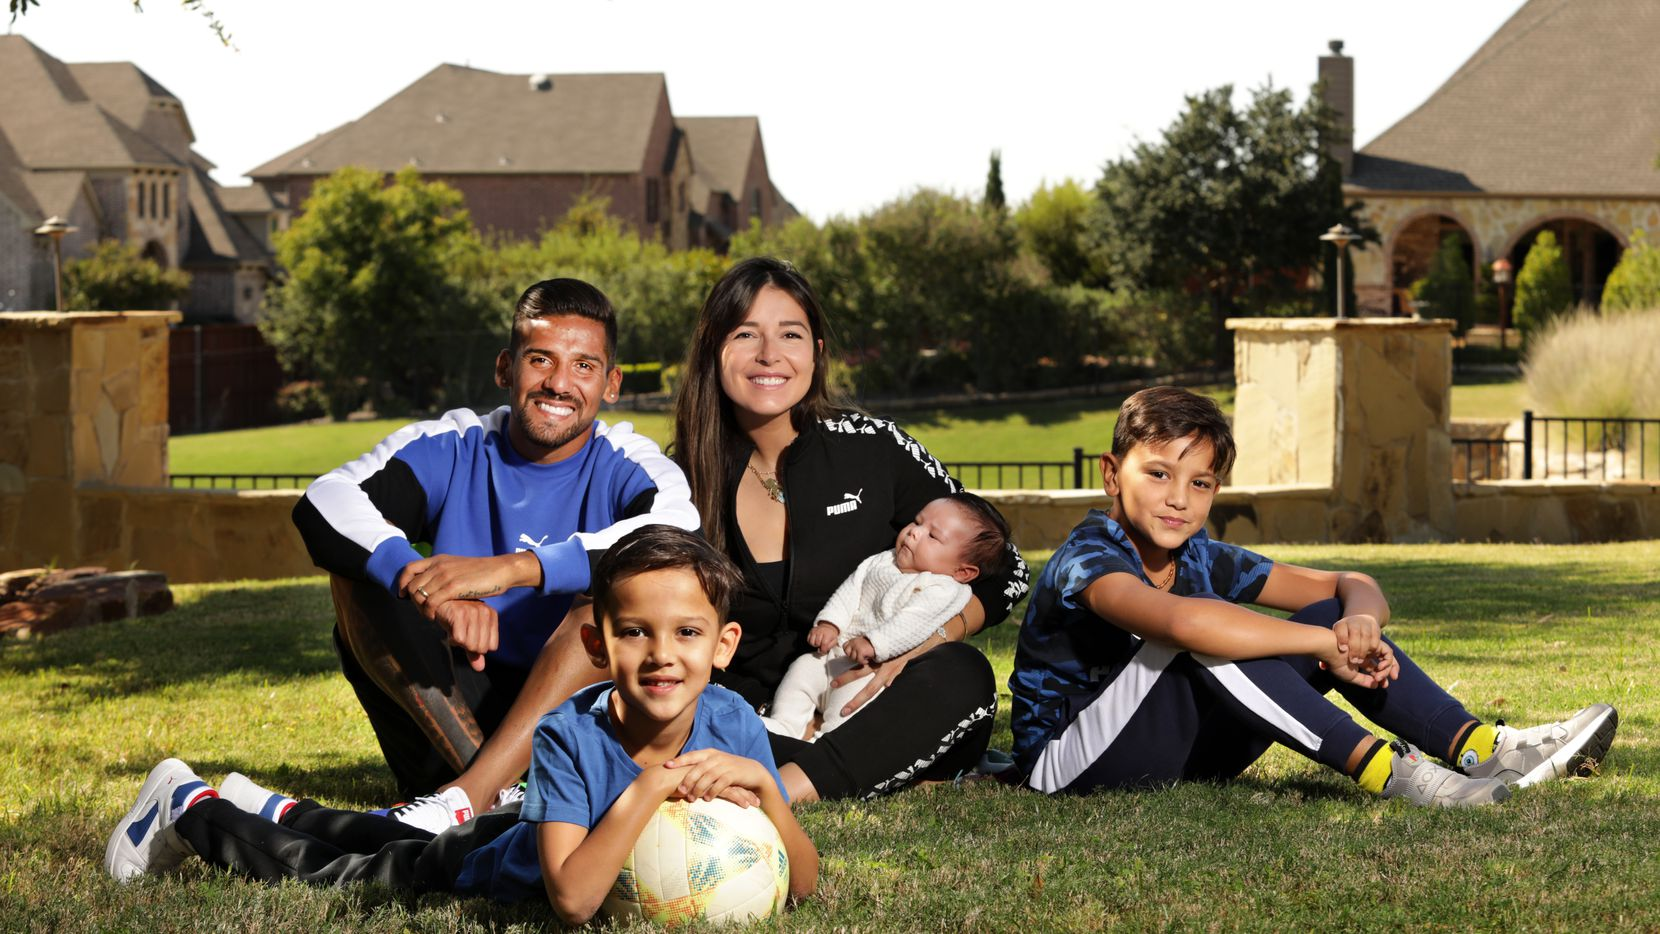 Franco Jara, left, 6-year-old Constantino Jara, Ruth Jara, 1-month-old Gianluca Jara, and 9-year-old Francesco Jara pose for a photograph at their home in Prosper, TX, on Oct. 5, 2020. (Jason Janik/Special Contributor)